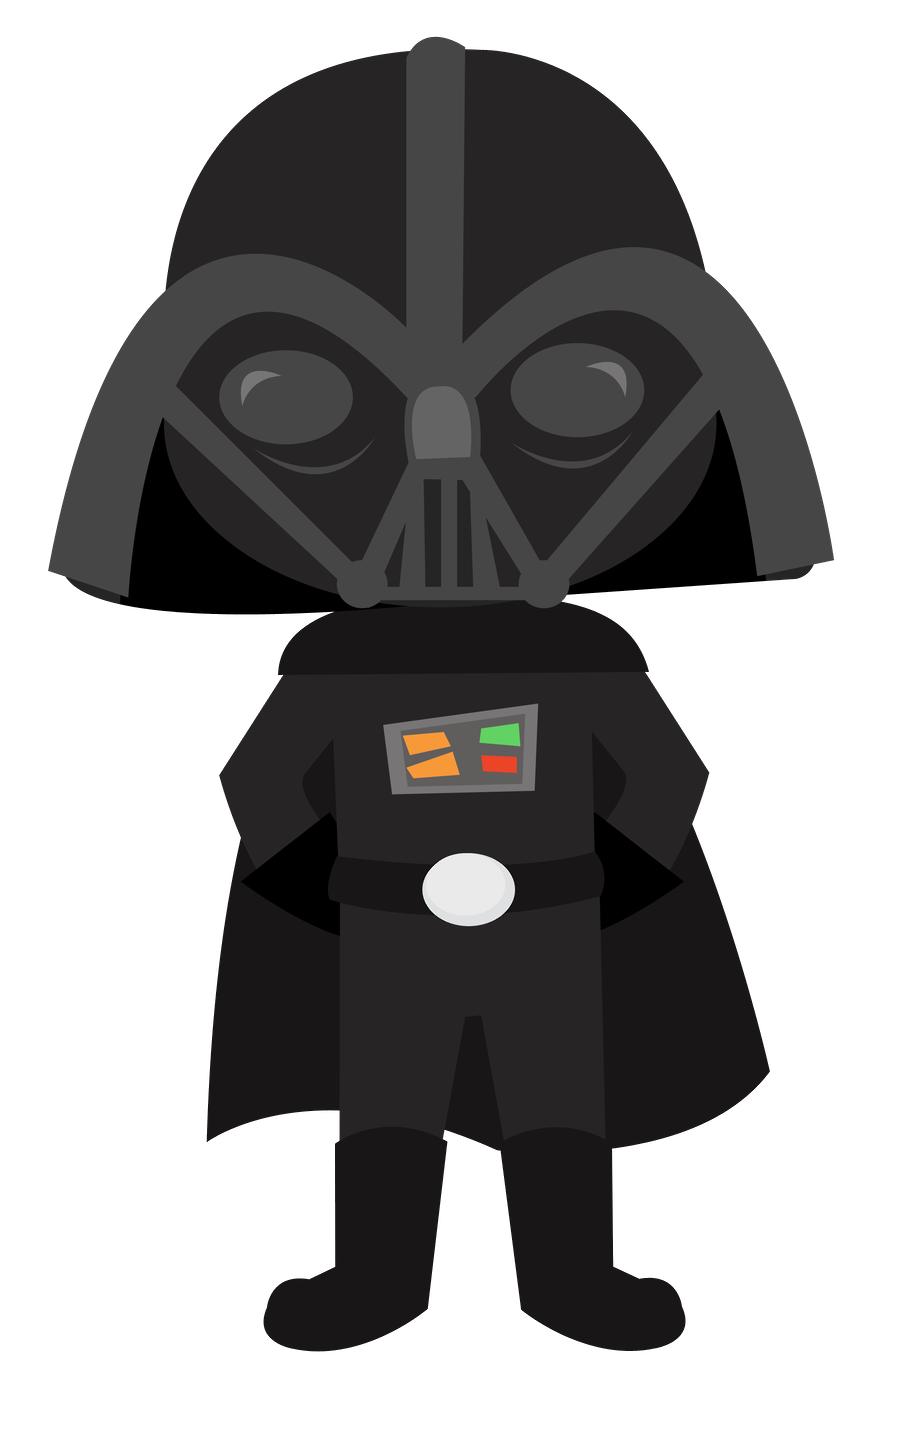 Starwars clipart sith. Star wars minus disney